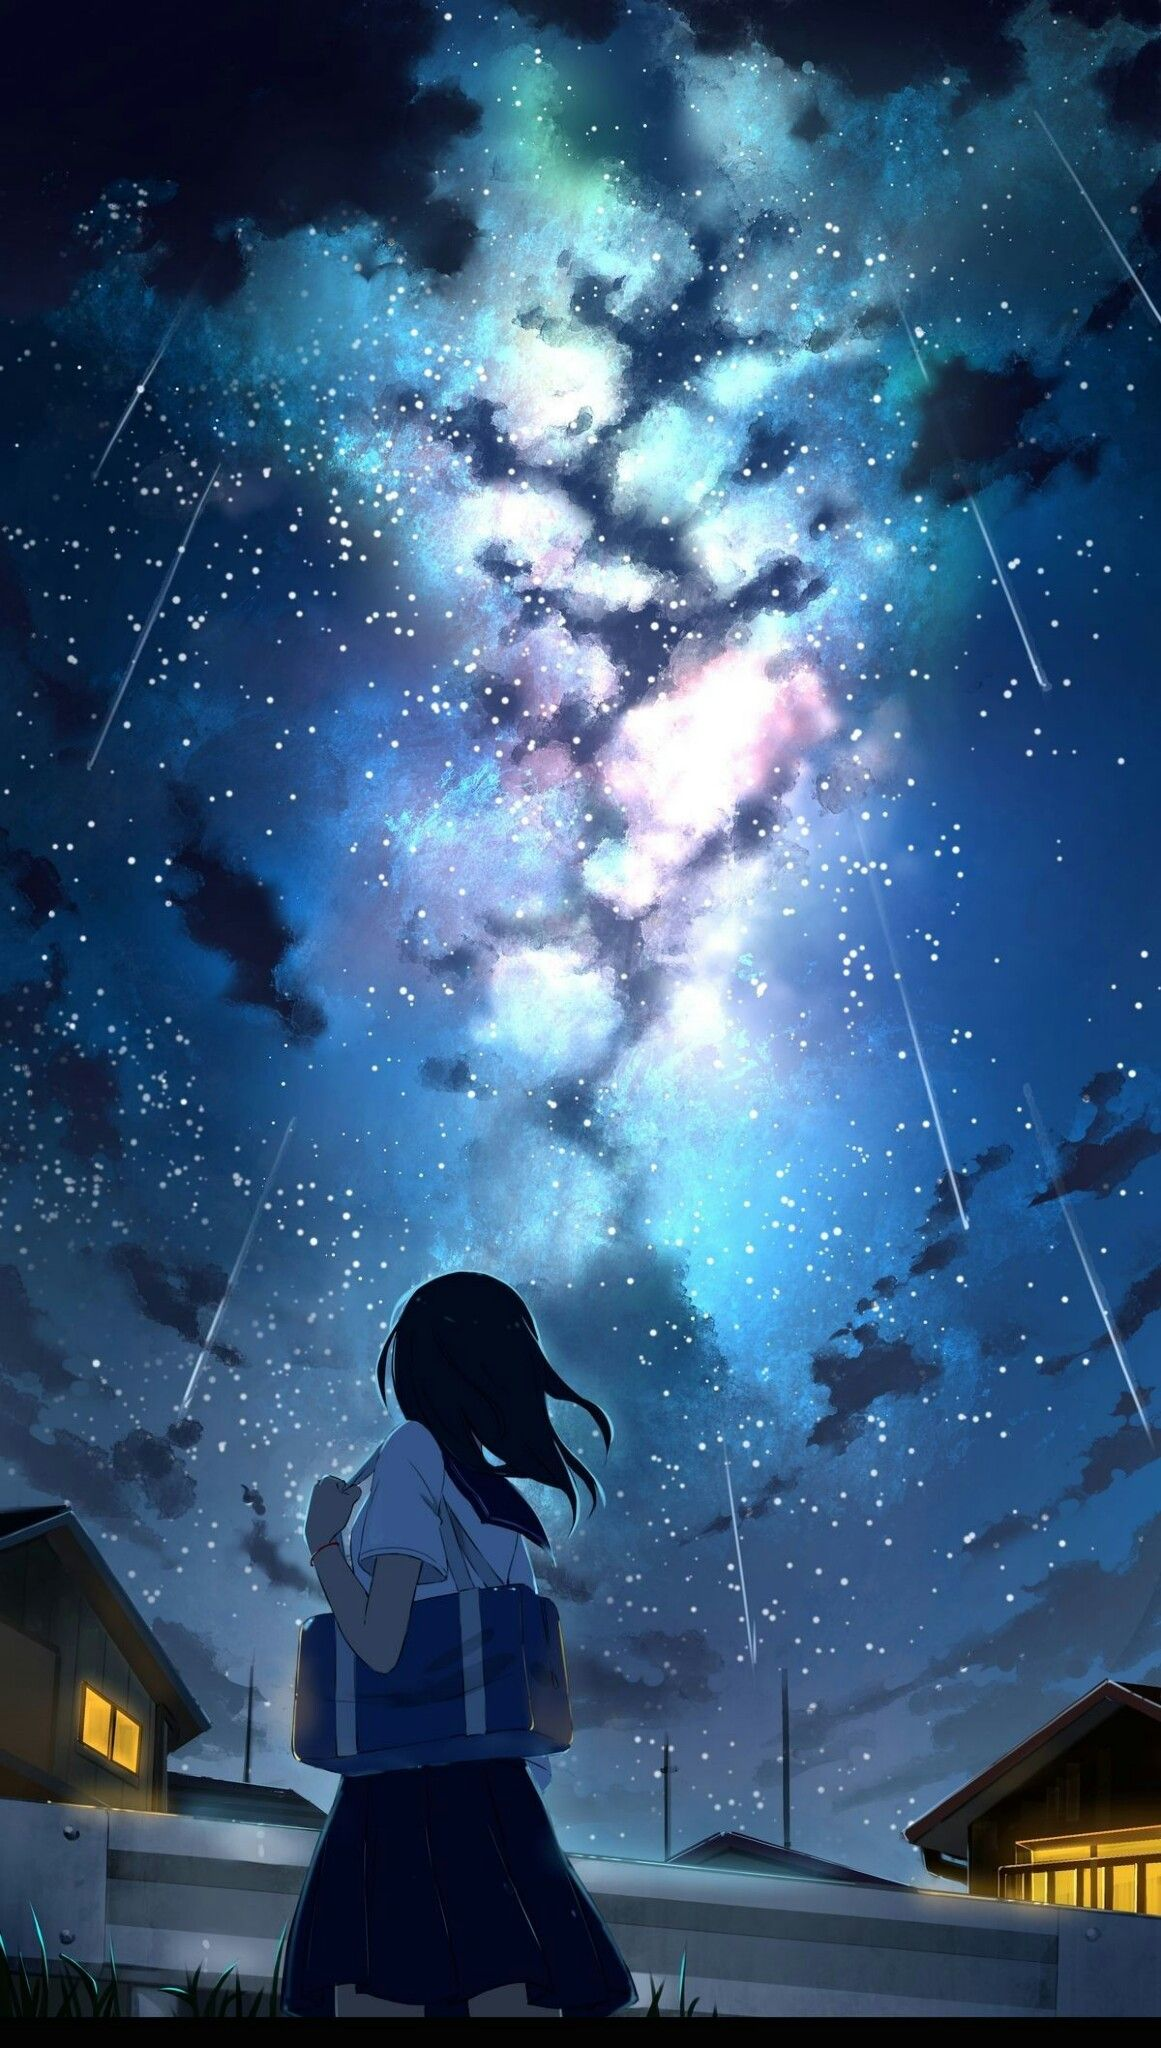 Pin By Simar Ace On Wallpaper Anime Galaxy Anime Scenery Anime